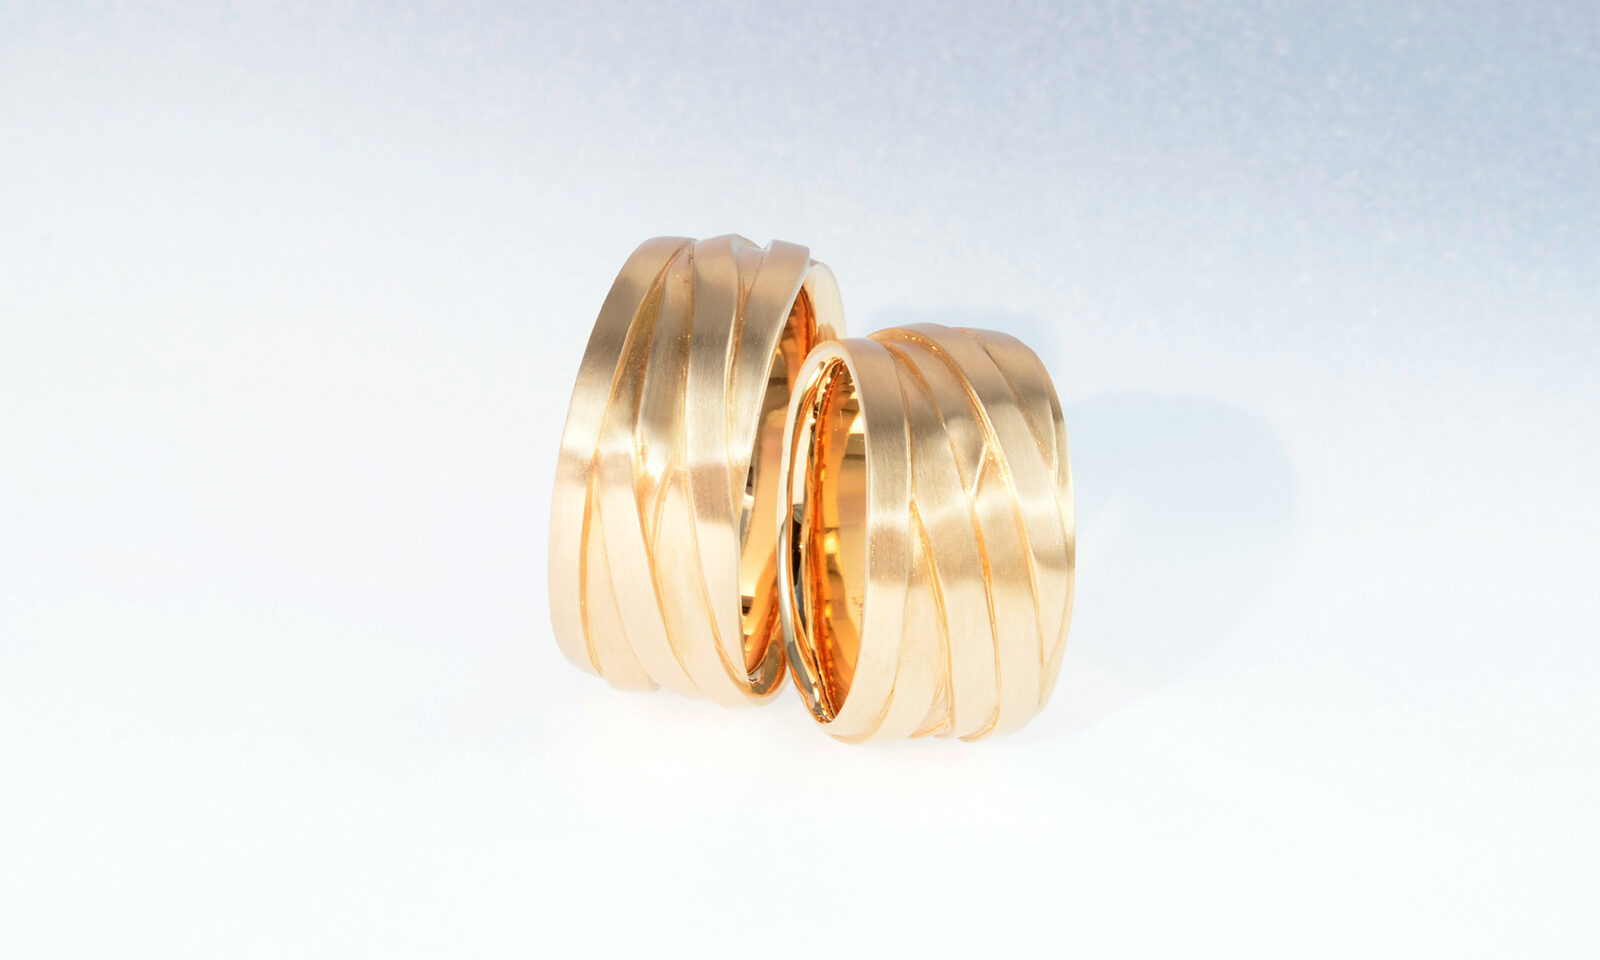 Partnerringe Rotgold. Trauringe Rotgold 750, Breite 10 - 11 mm, CHF 3600.- / 3450.-